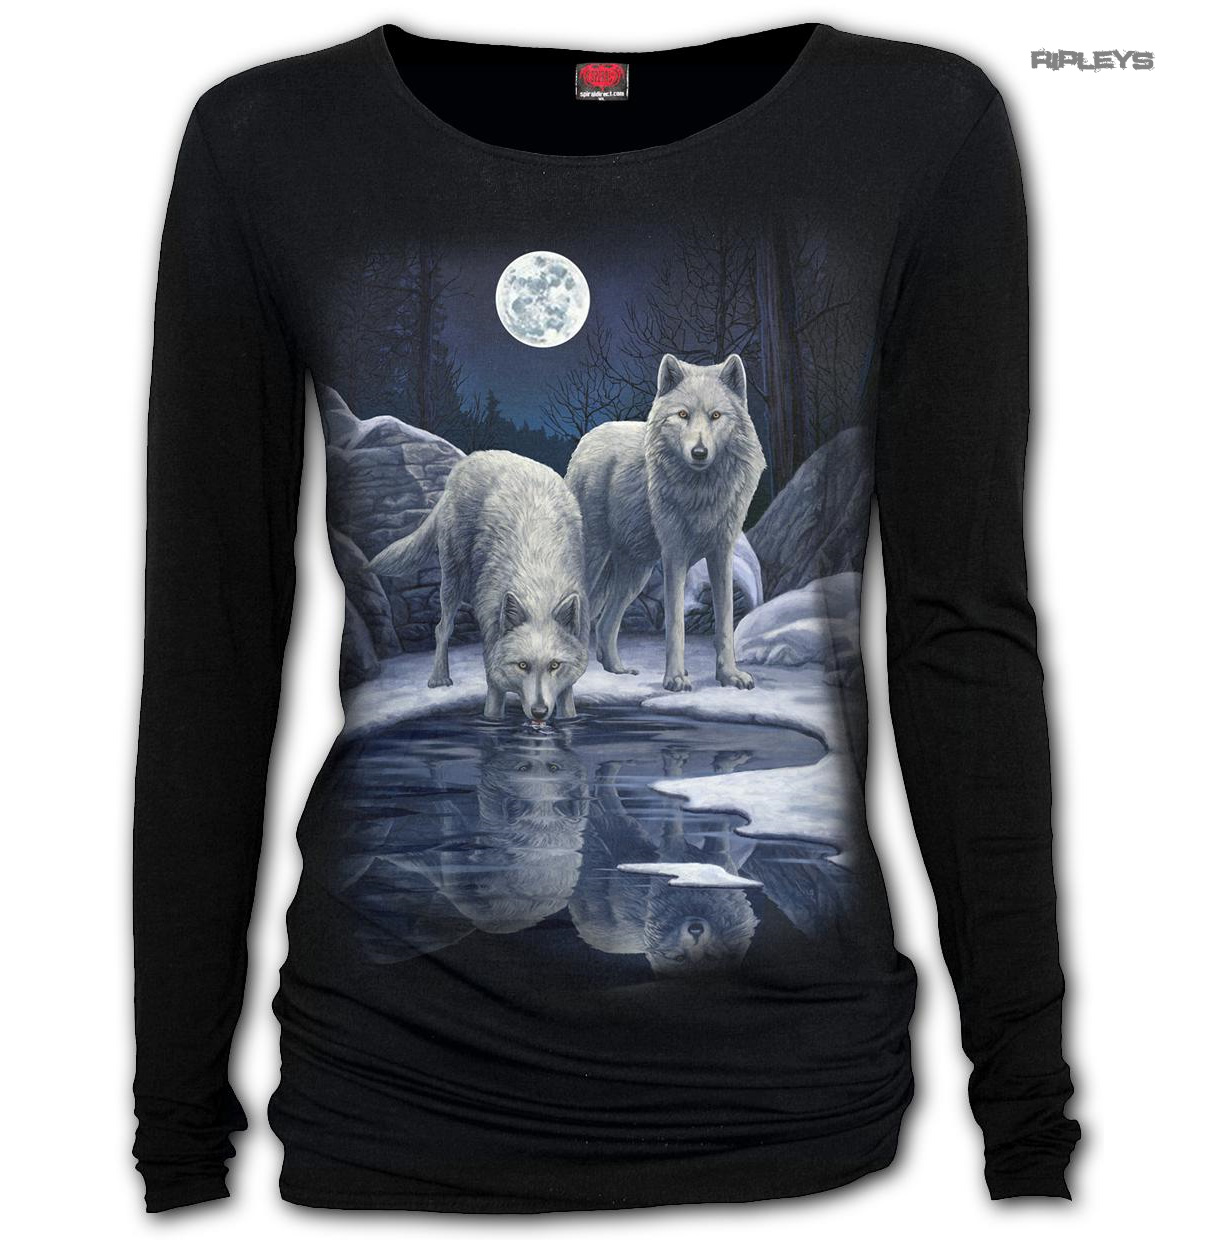 Spiral-Direct-Ladies-Black-Goth-WARRIORS-OF-WINTER-Wolf-L-Sleeve-Top-All-Sizes thumbnail 10